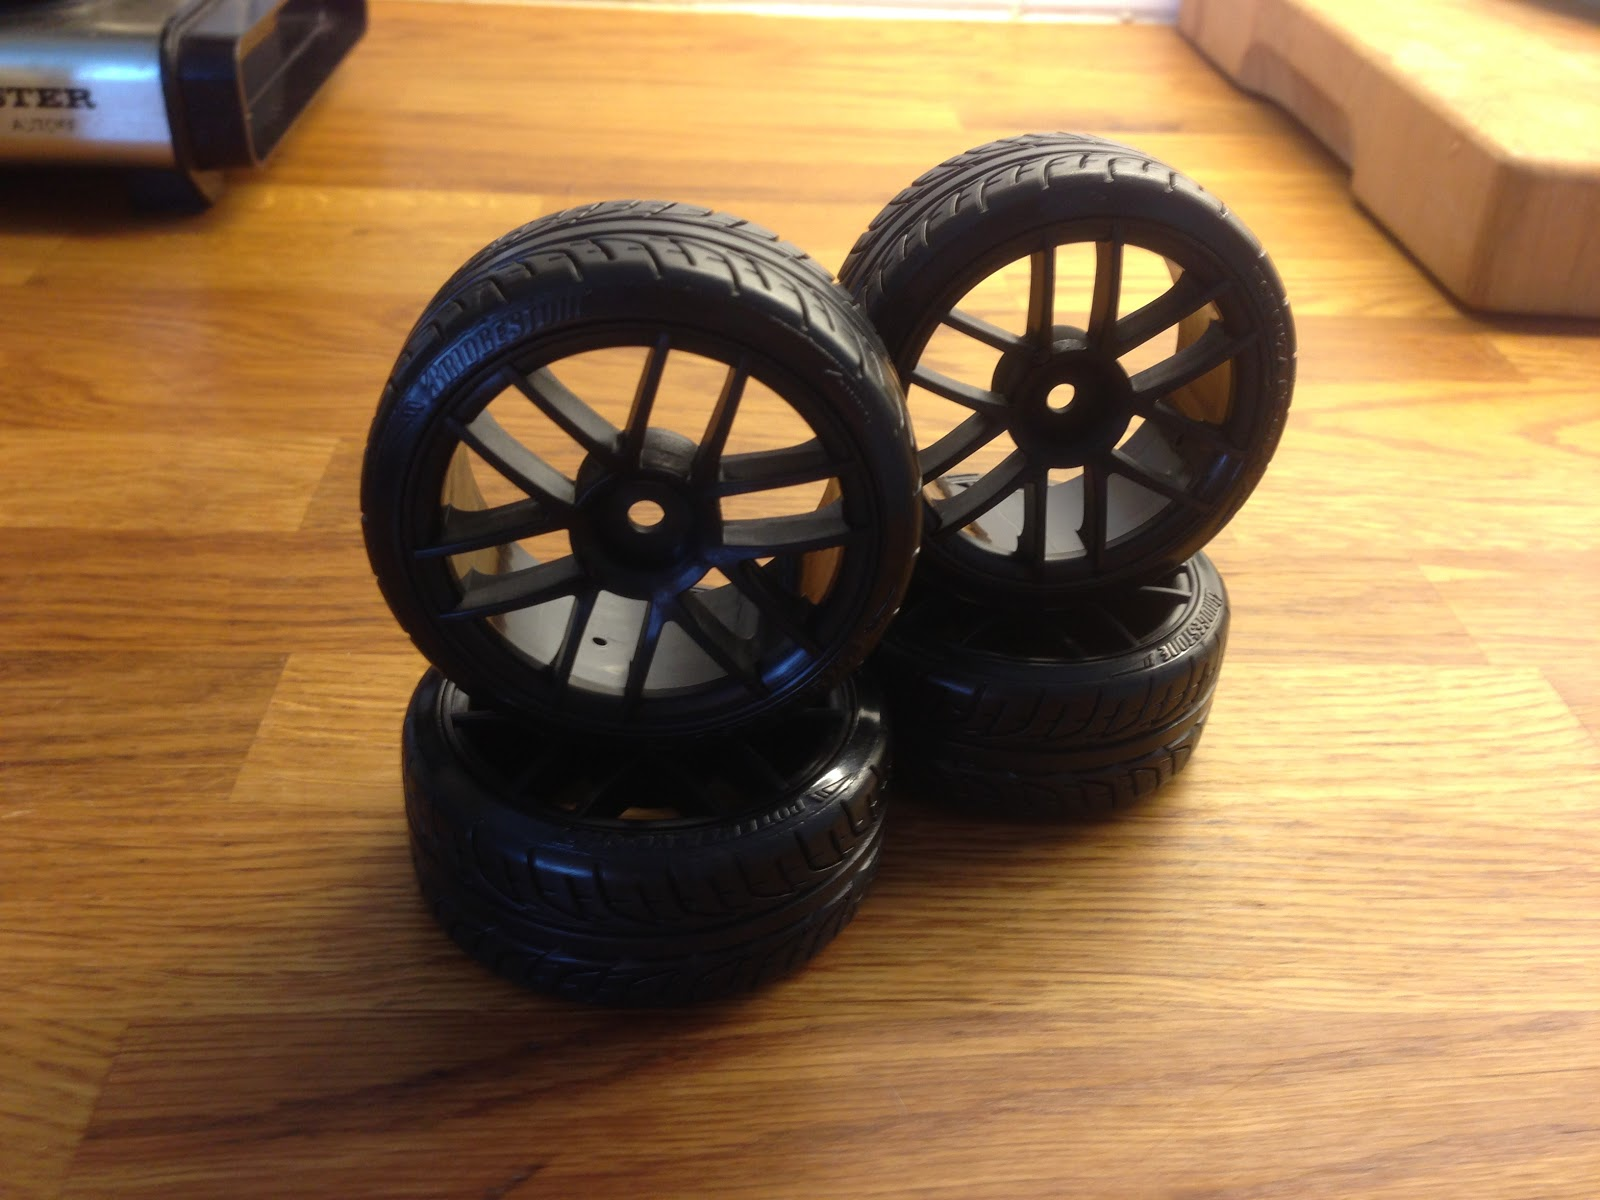 HPI SPLIT 6 WHEEL 26mm med HPI POTENZA RE-01R T-DRIFT TIRE 26mm MrBoo